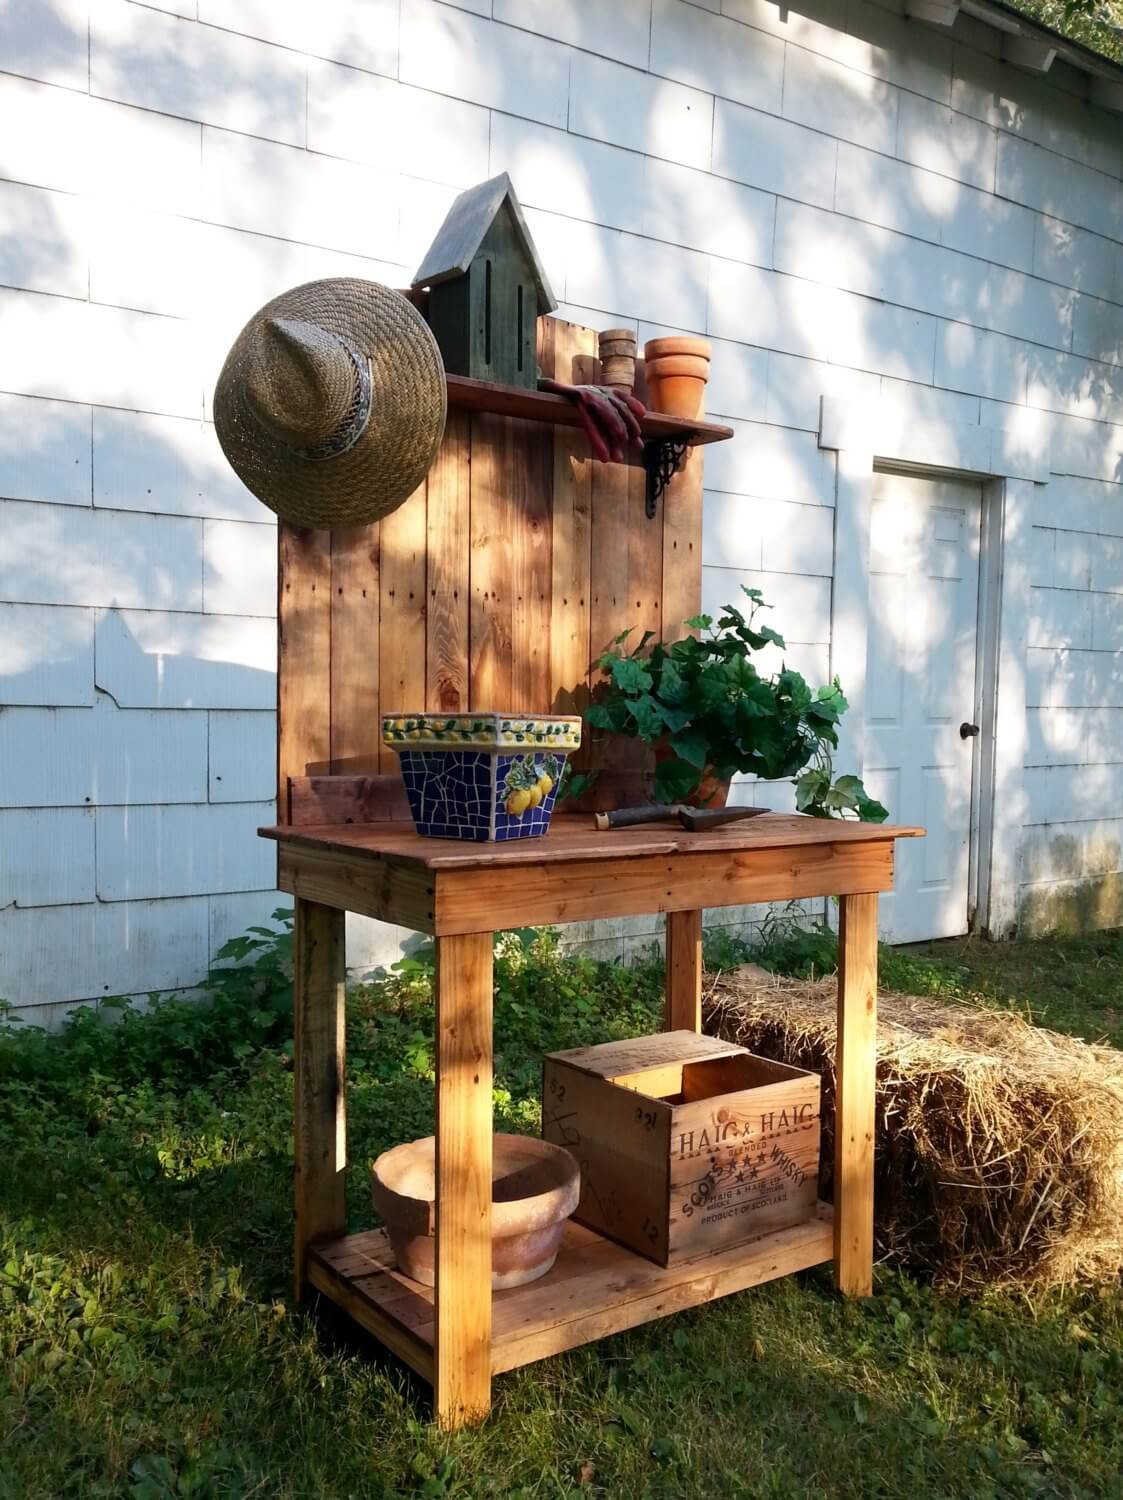 Potting Bench Made from Upcycled Pallets